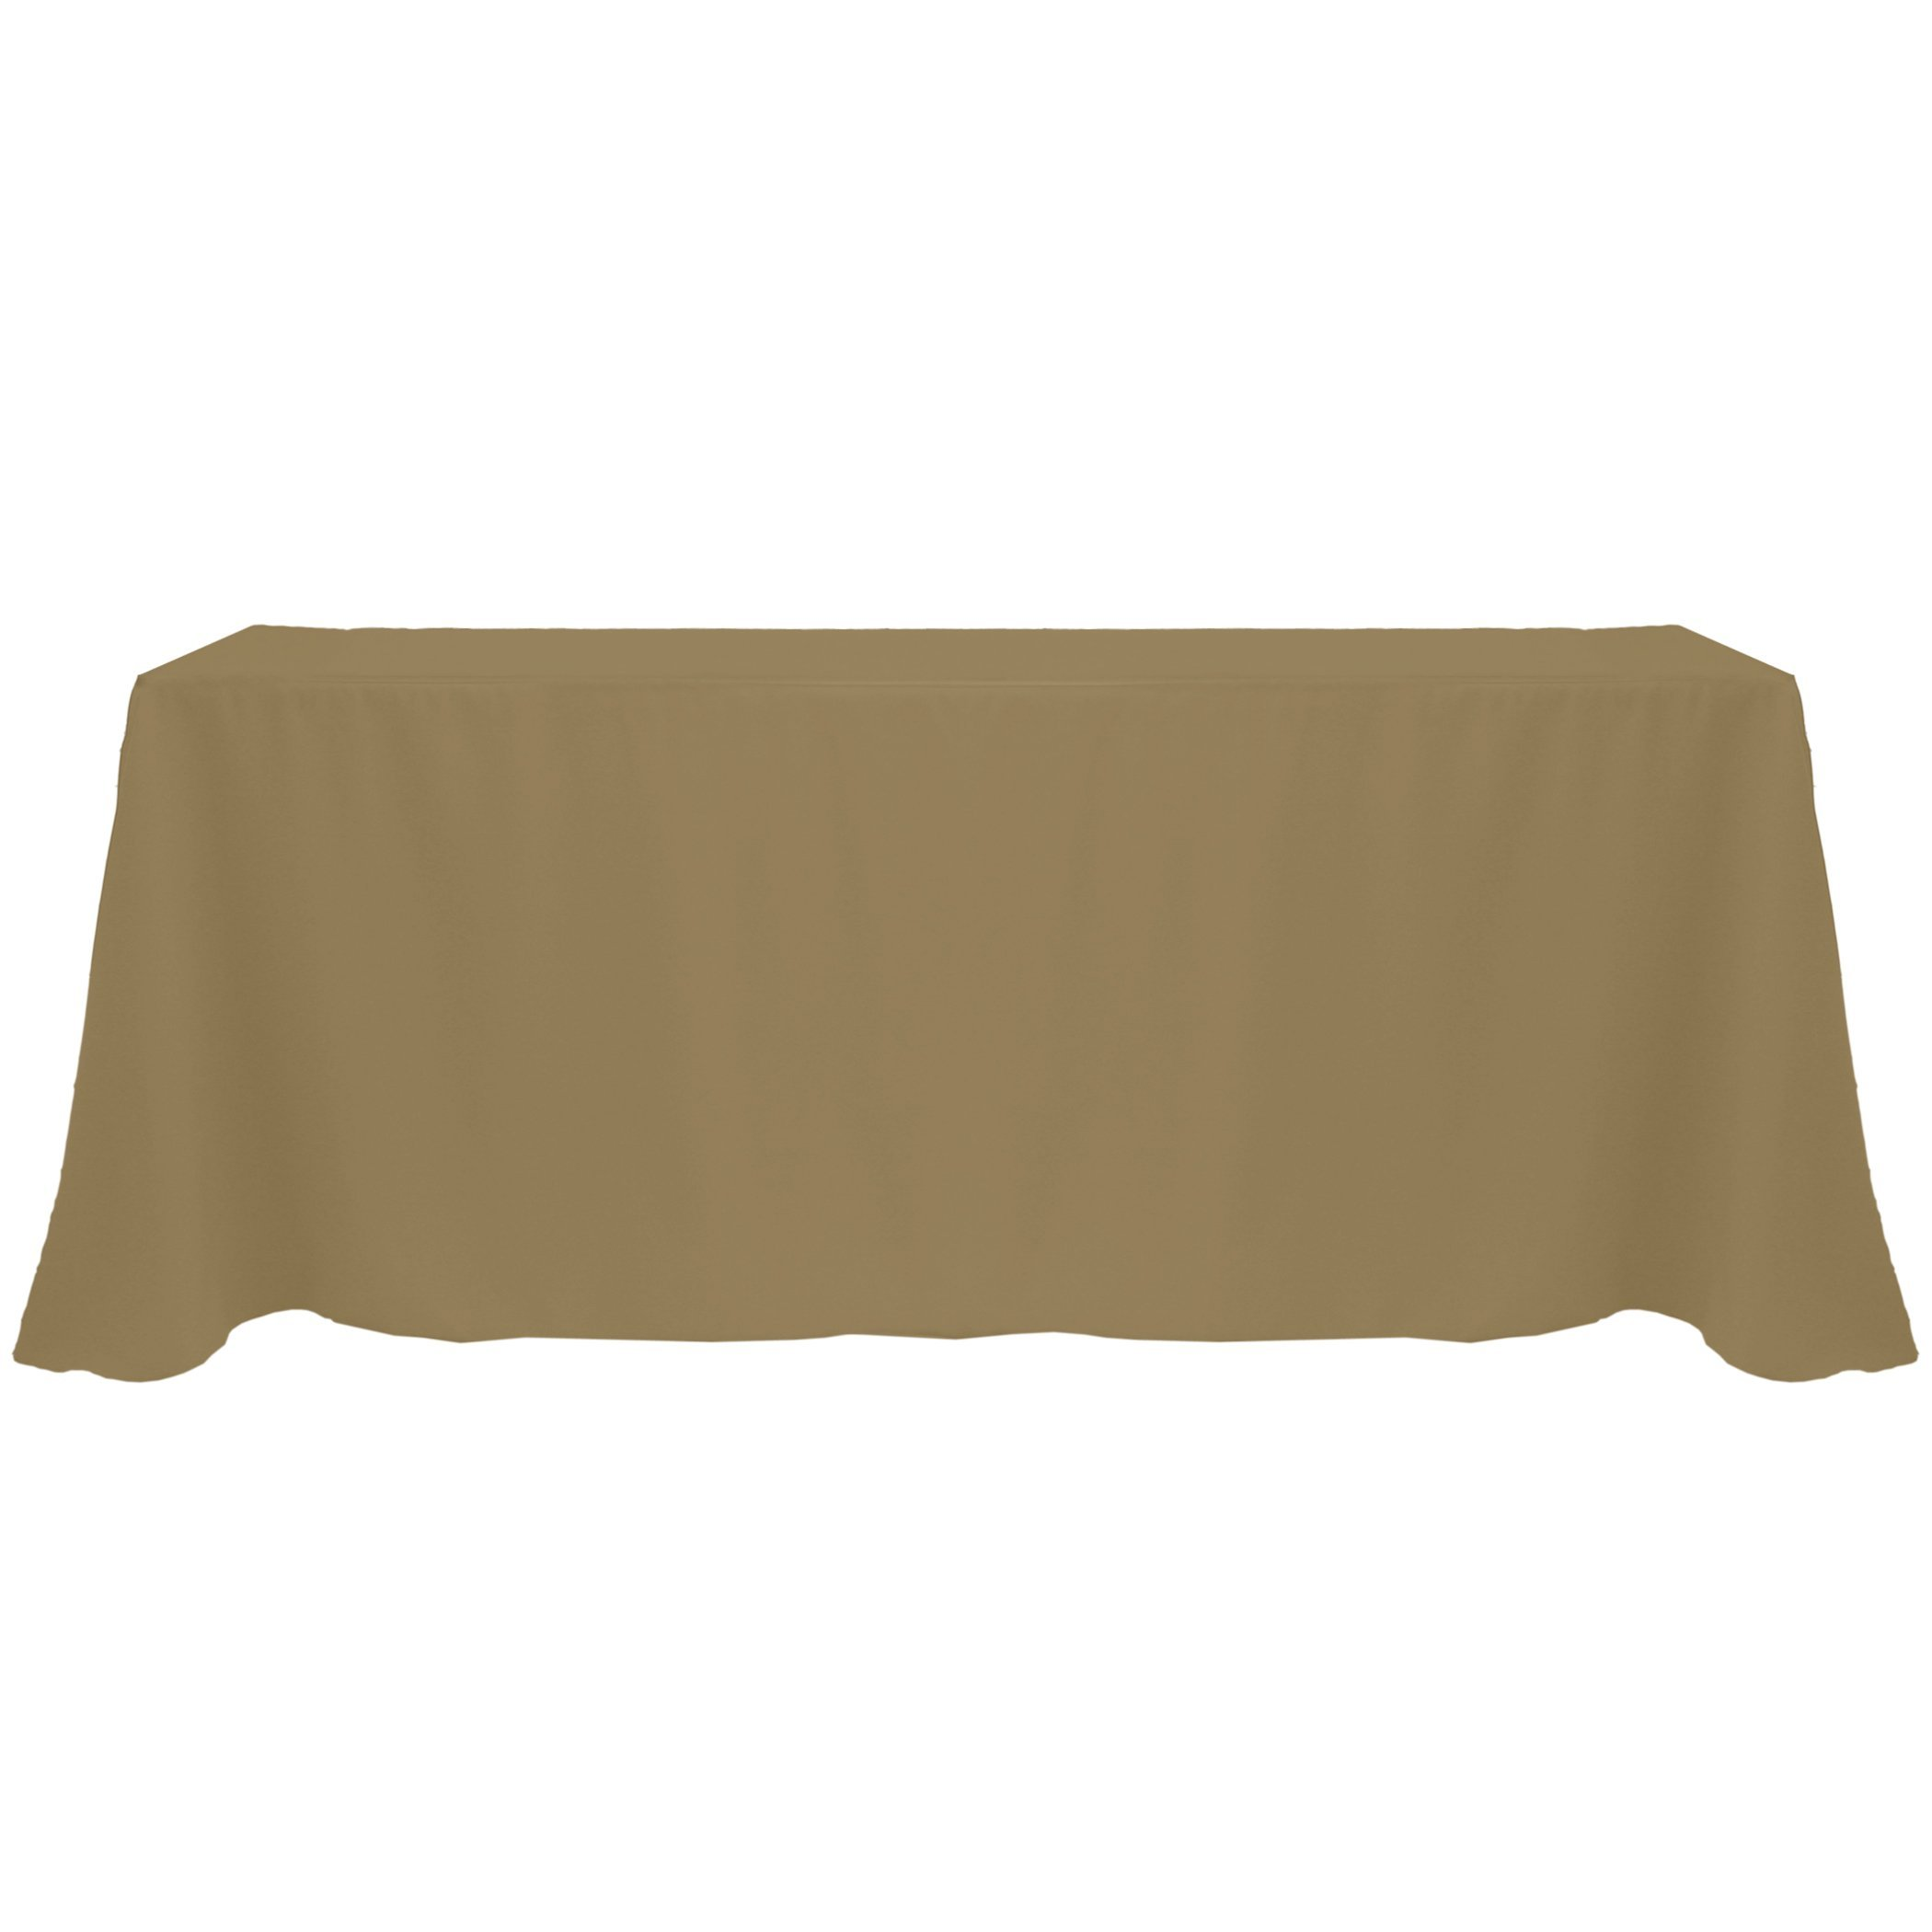 Ultimate Textile (20 Pack) 90 x 132-Inch Rectangular Polyester Linen Tablecloth with Rounded Corners - for Wedding, Restaurant or Banquet use, Cafe Khaki